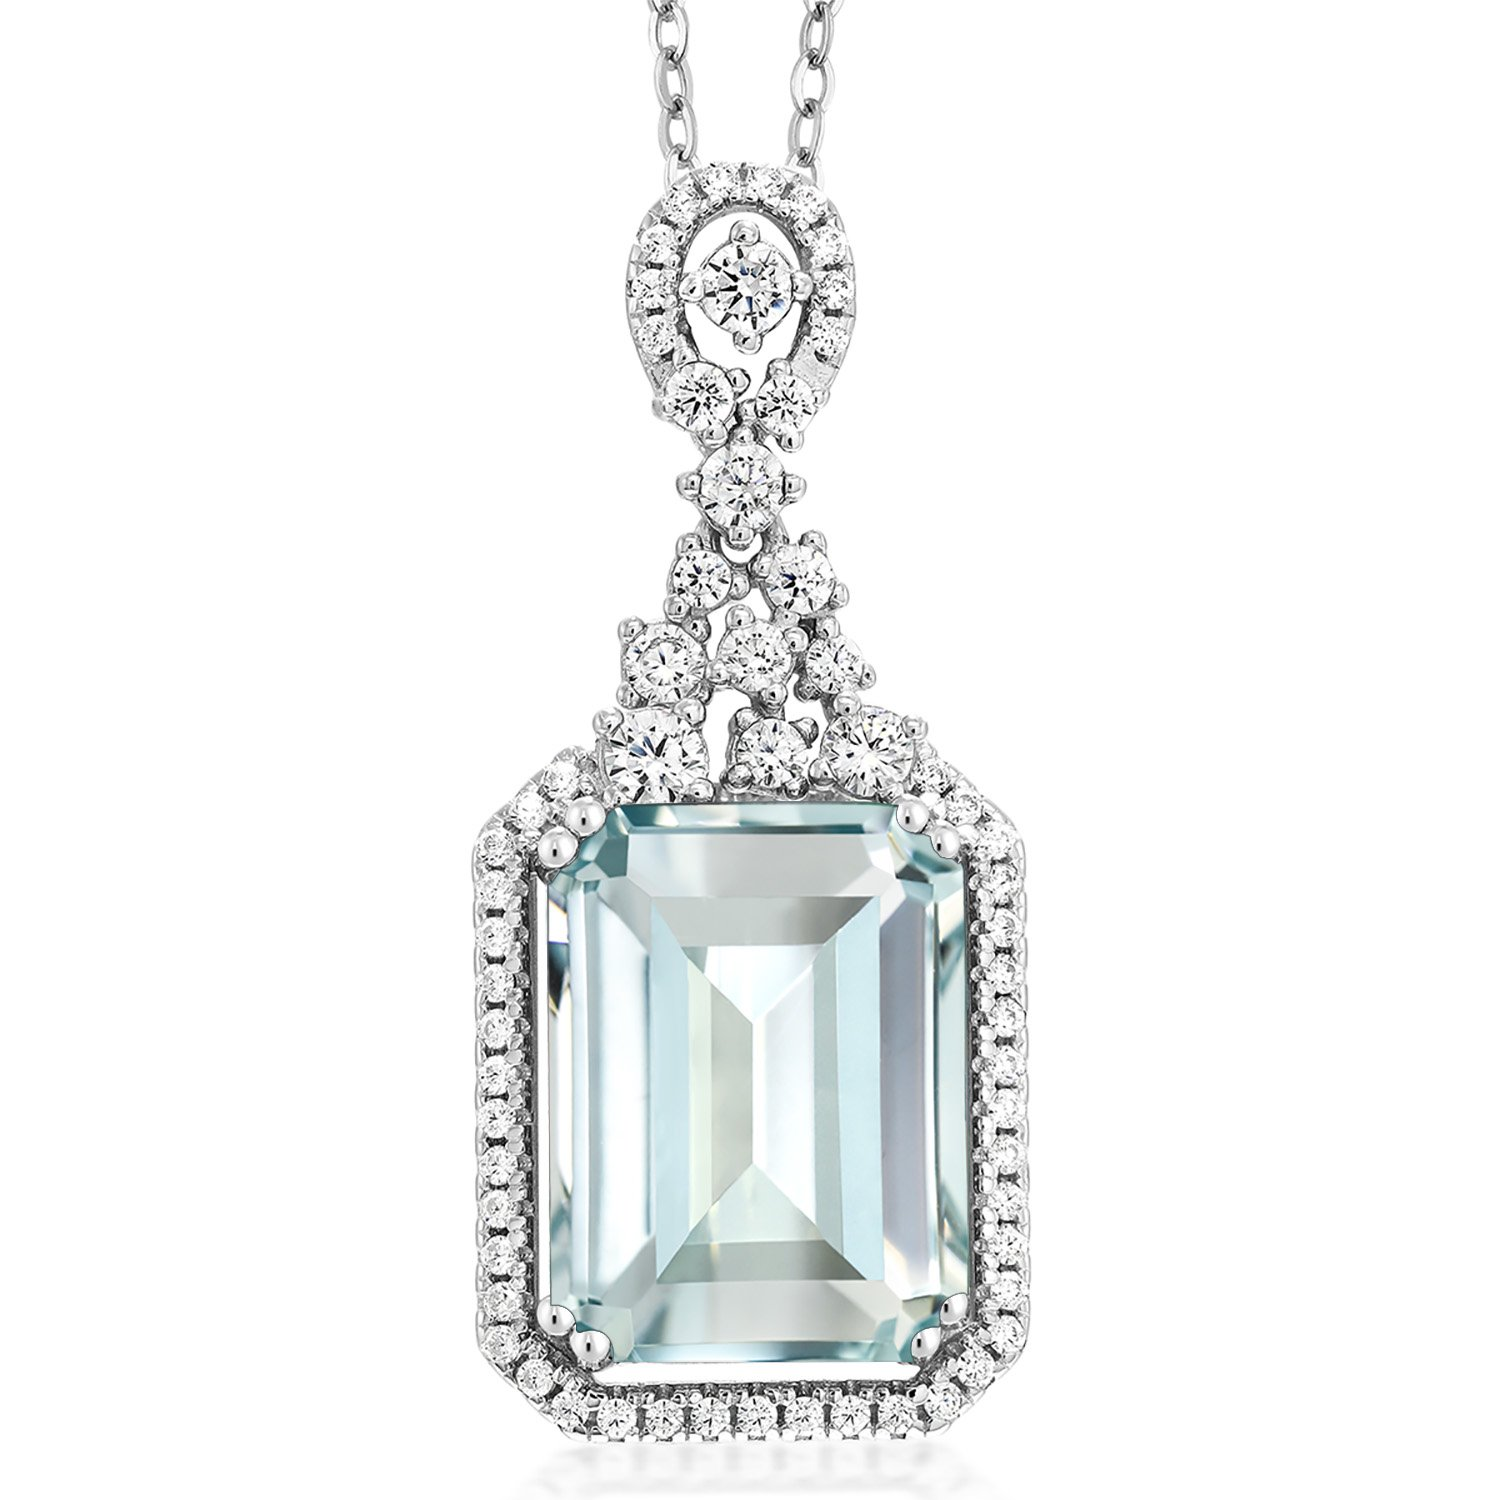 Sky Blue Simulated Aquamarine 925 Sterling Silver Pendant Necklace 7.24 Ct Emerald Cut with 18 Inch Silver Chain